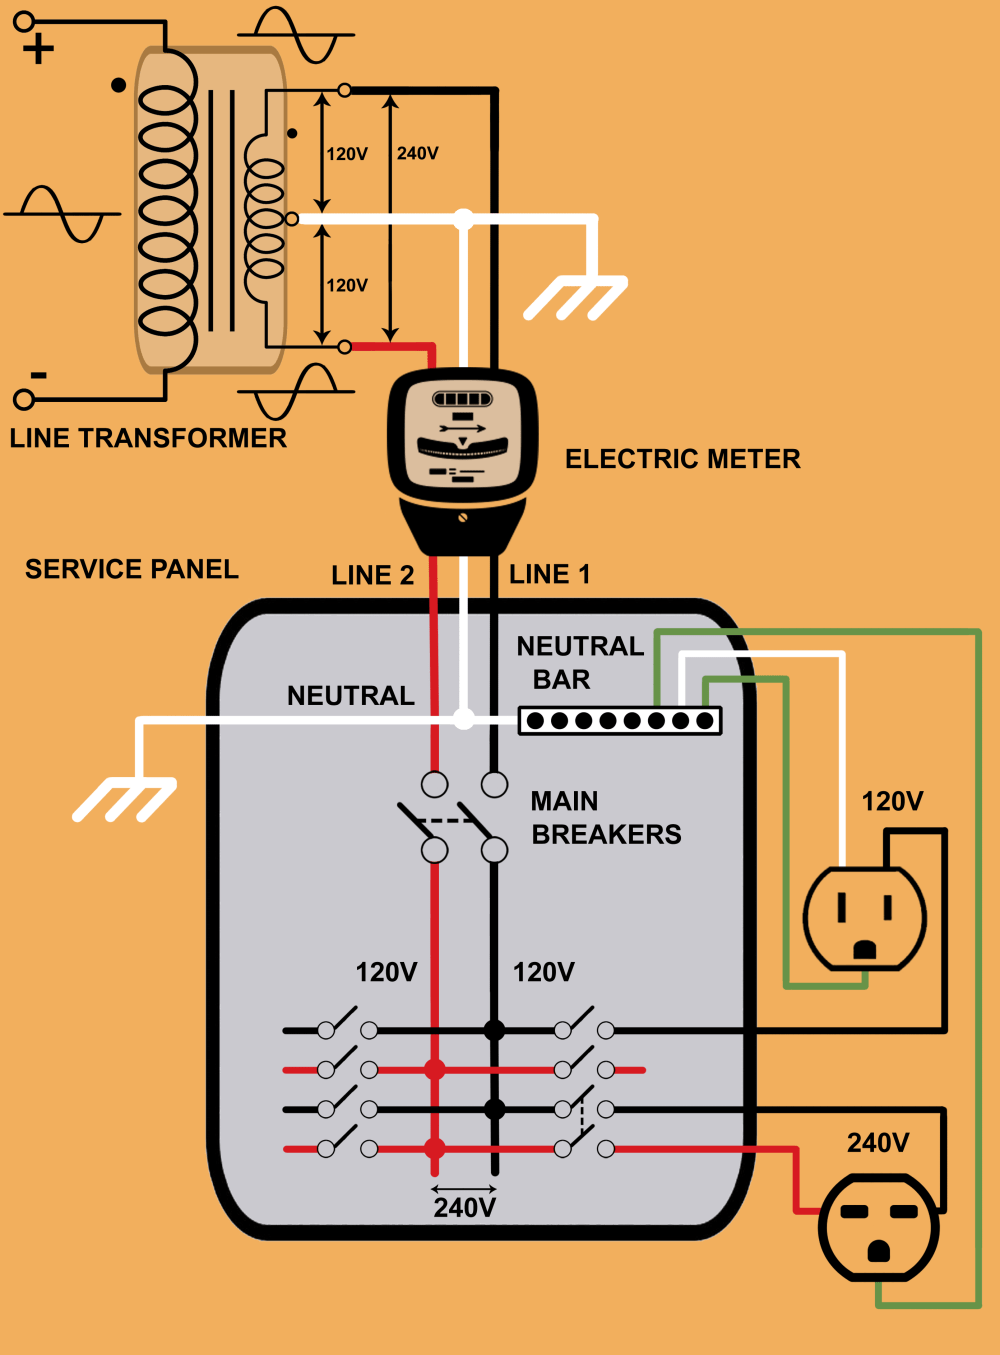 medium resolution of step down distribution transformer electric meter and service panel